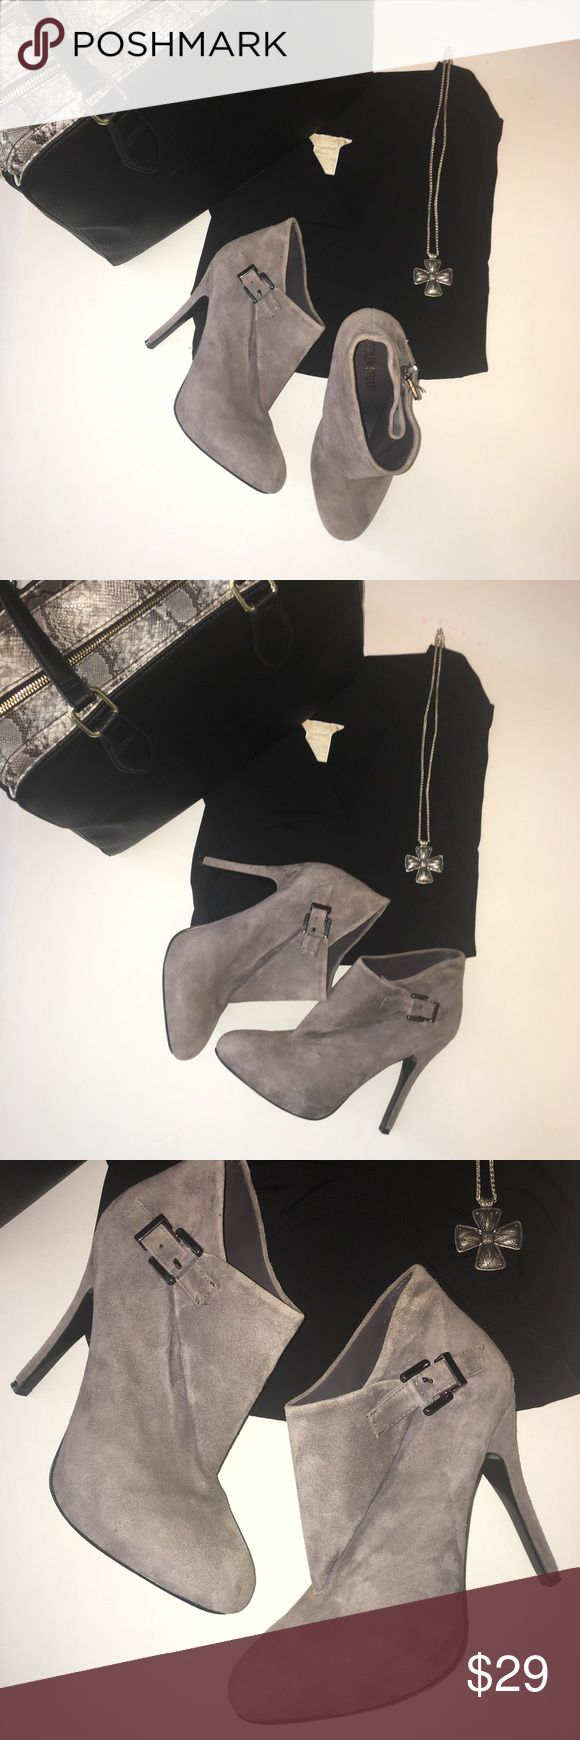 "Colin Stuart Suede Heels NWOT, gorgeous gray suede ankle boots with silver time buckle. Approx 4"" heel. Super-cute!!! Colin Stuart Shoes Ankle Boots & Booties"